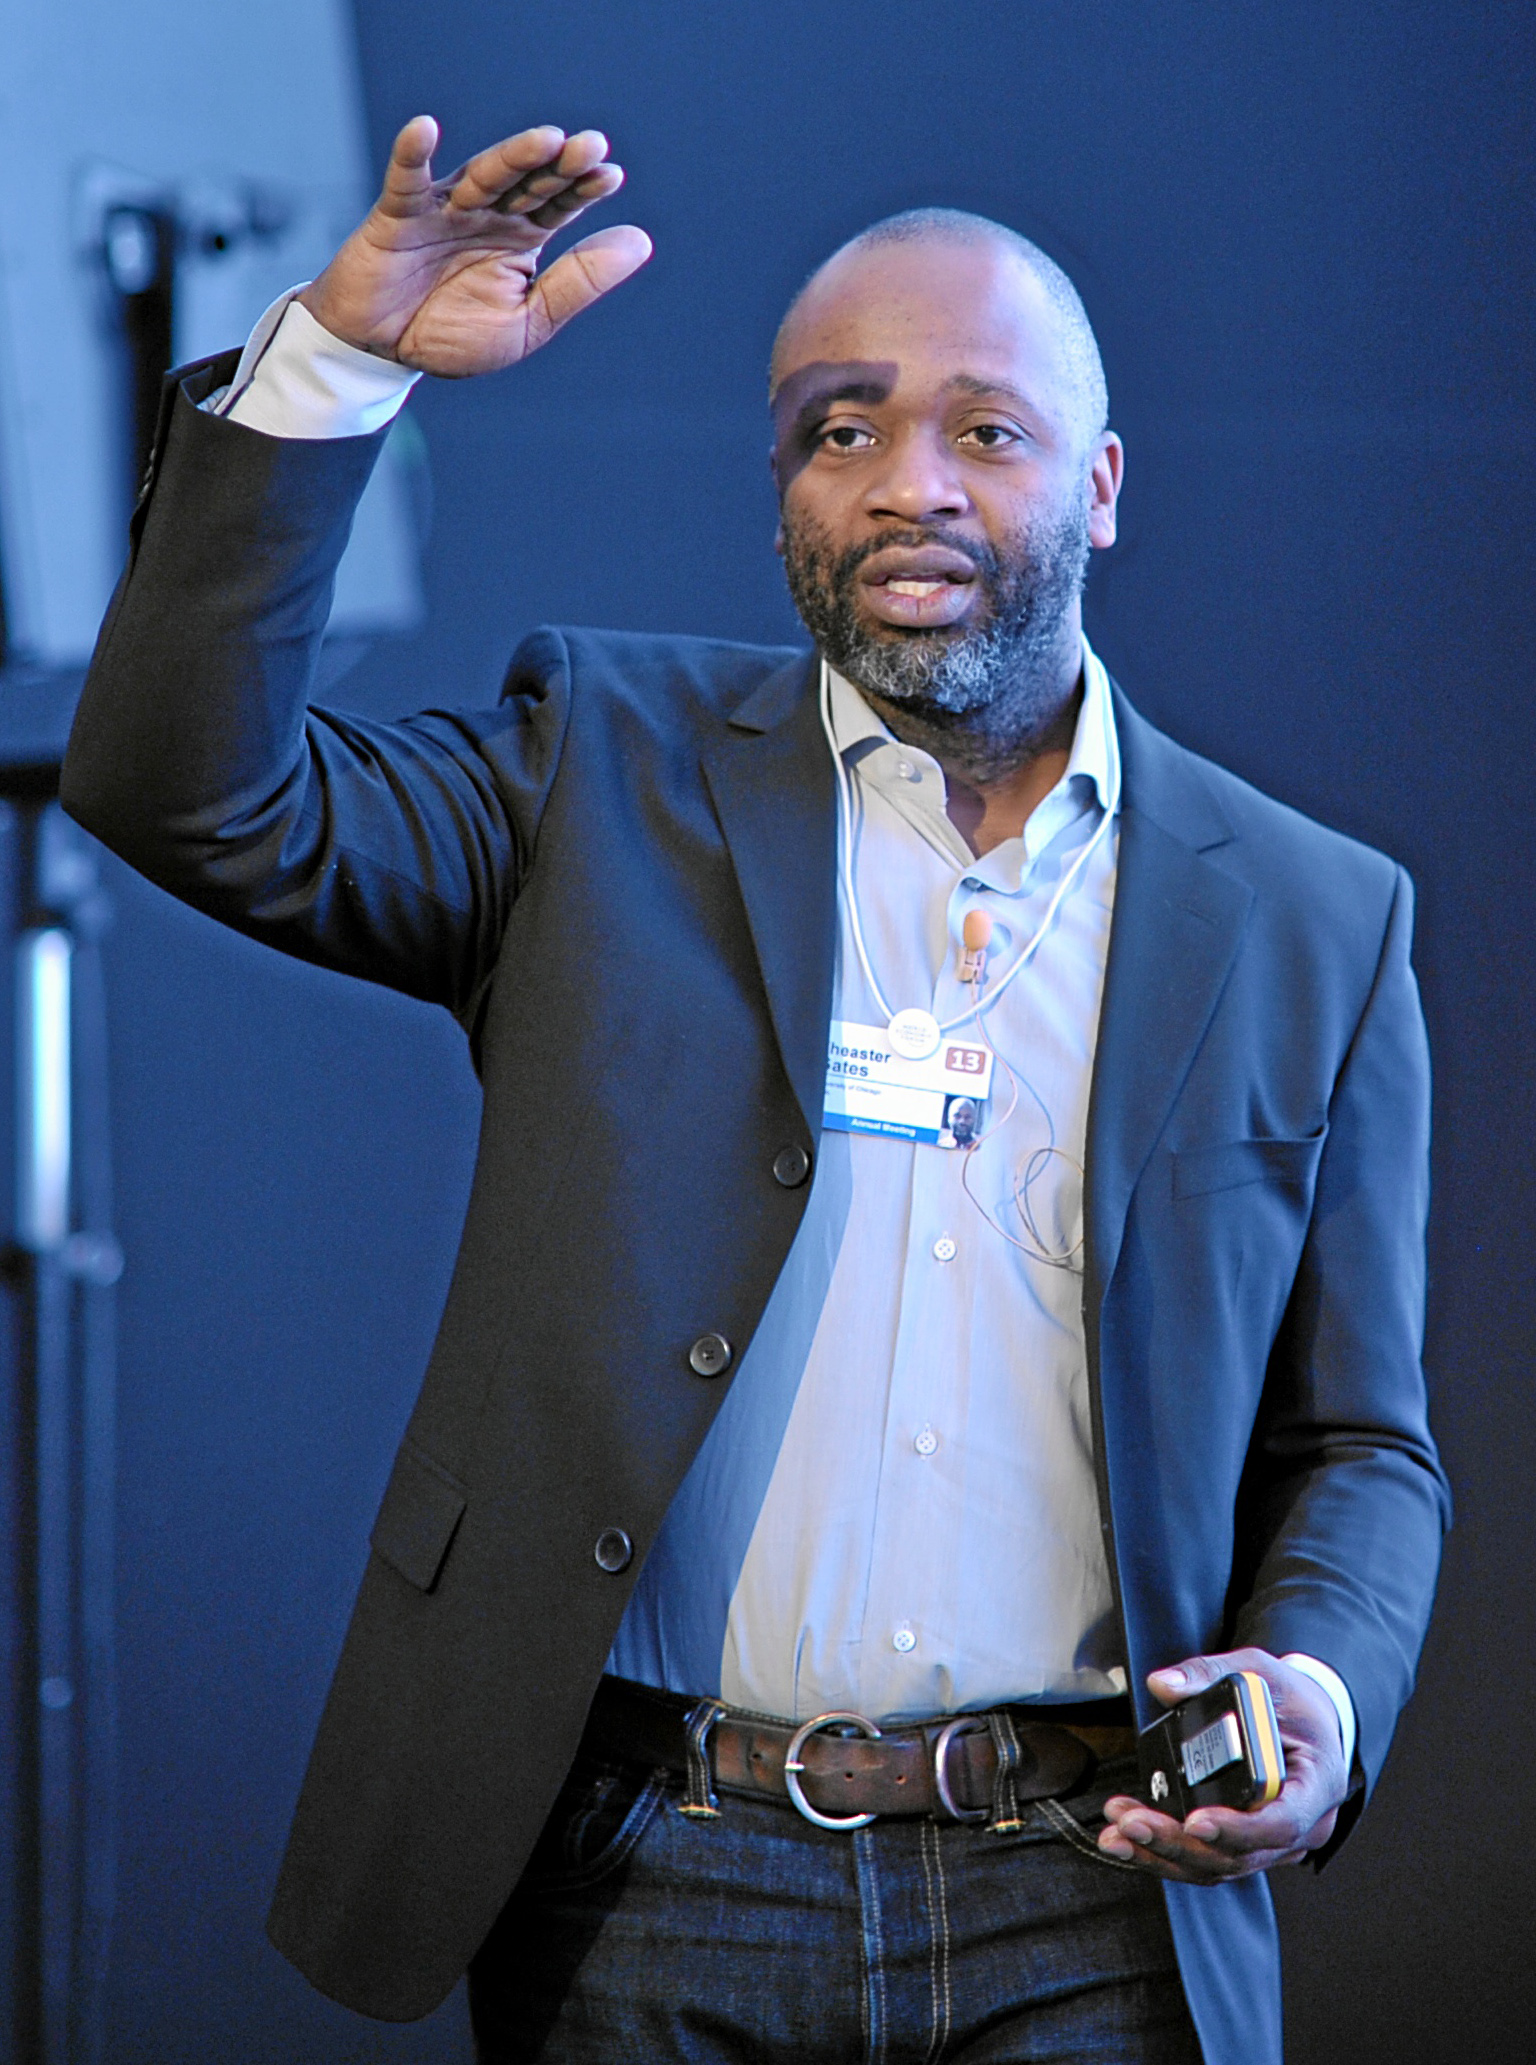 Theaster Gates Wikipedia